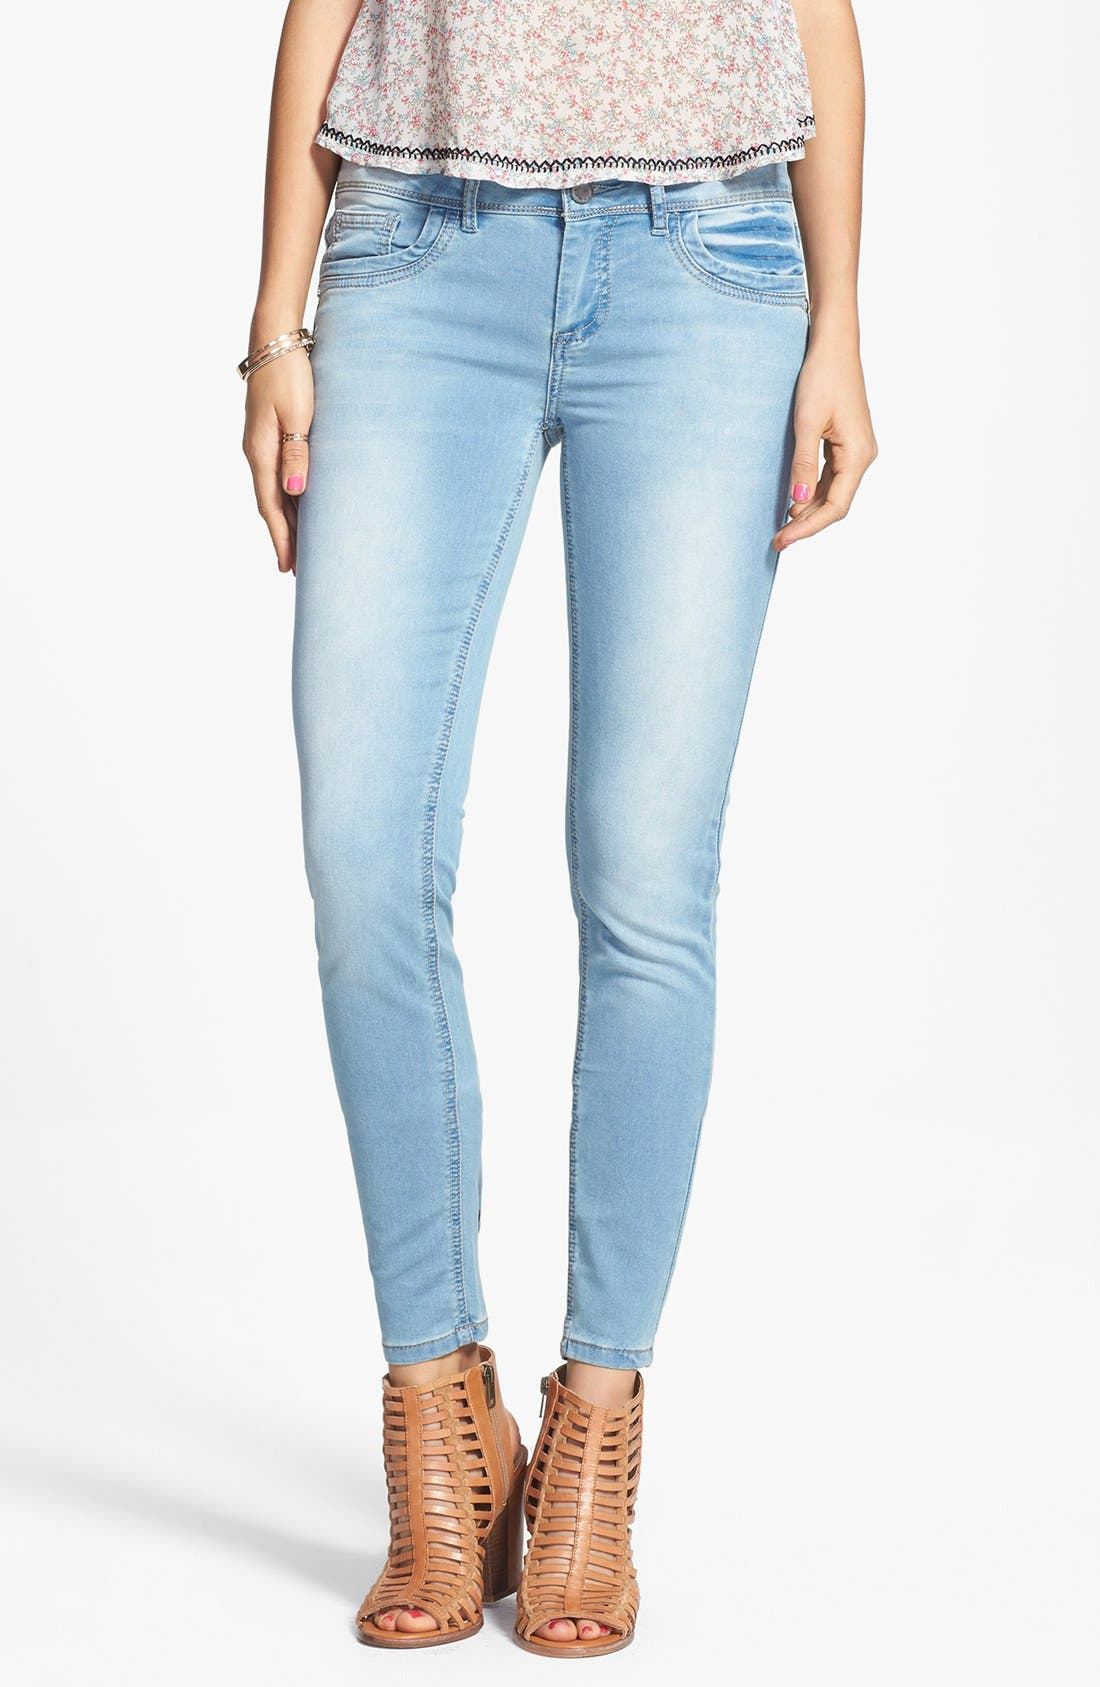 Alternate Image 1 Selected - Jou Jou French Terry Knit Skinny Jeans (Juniors)